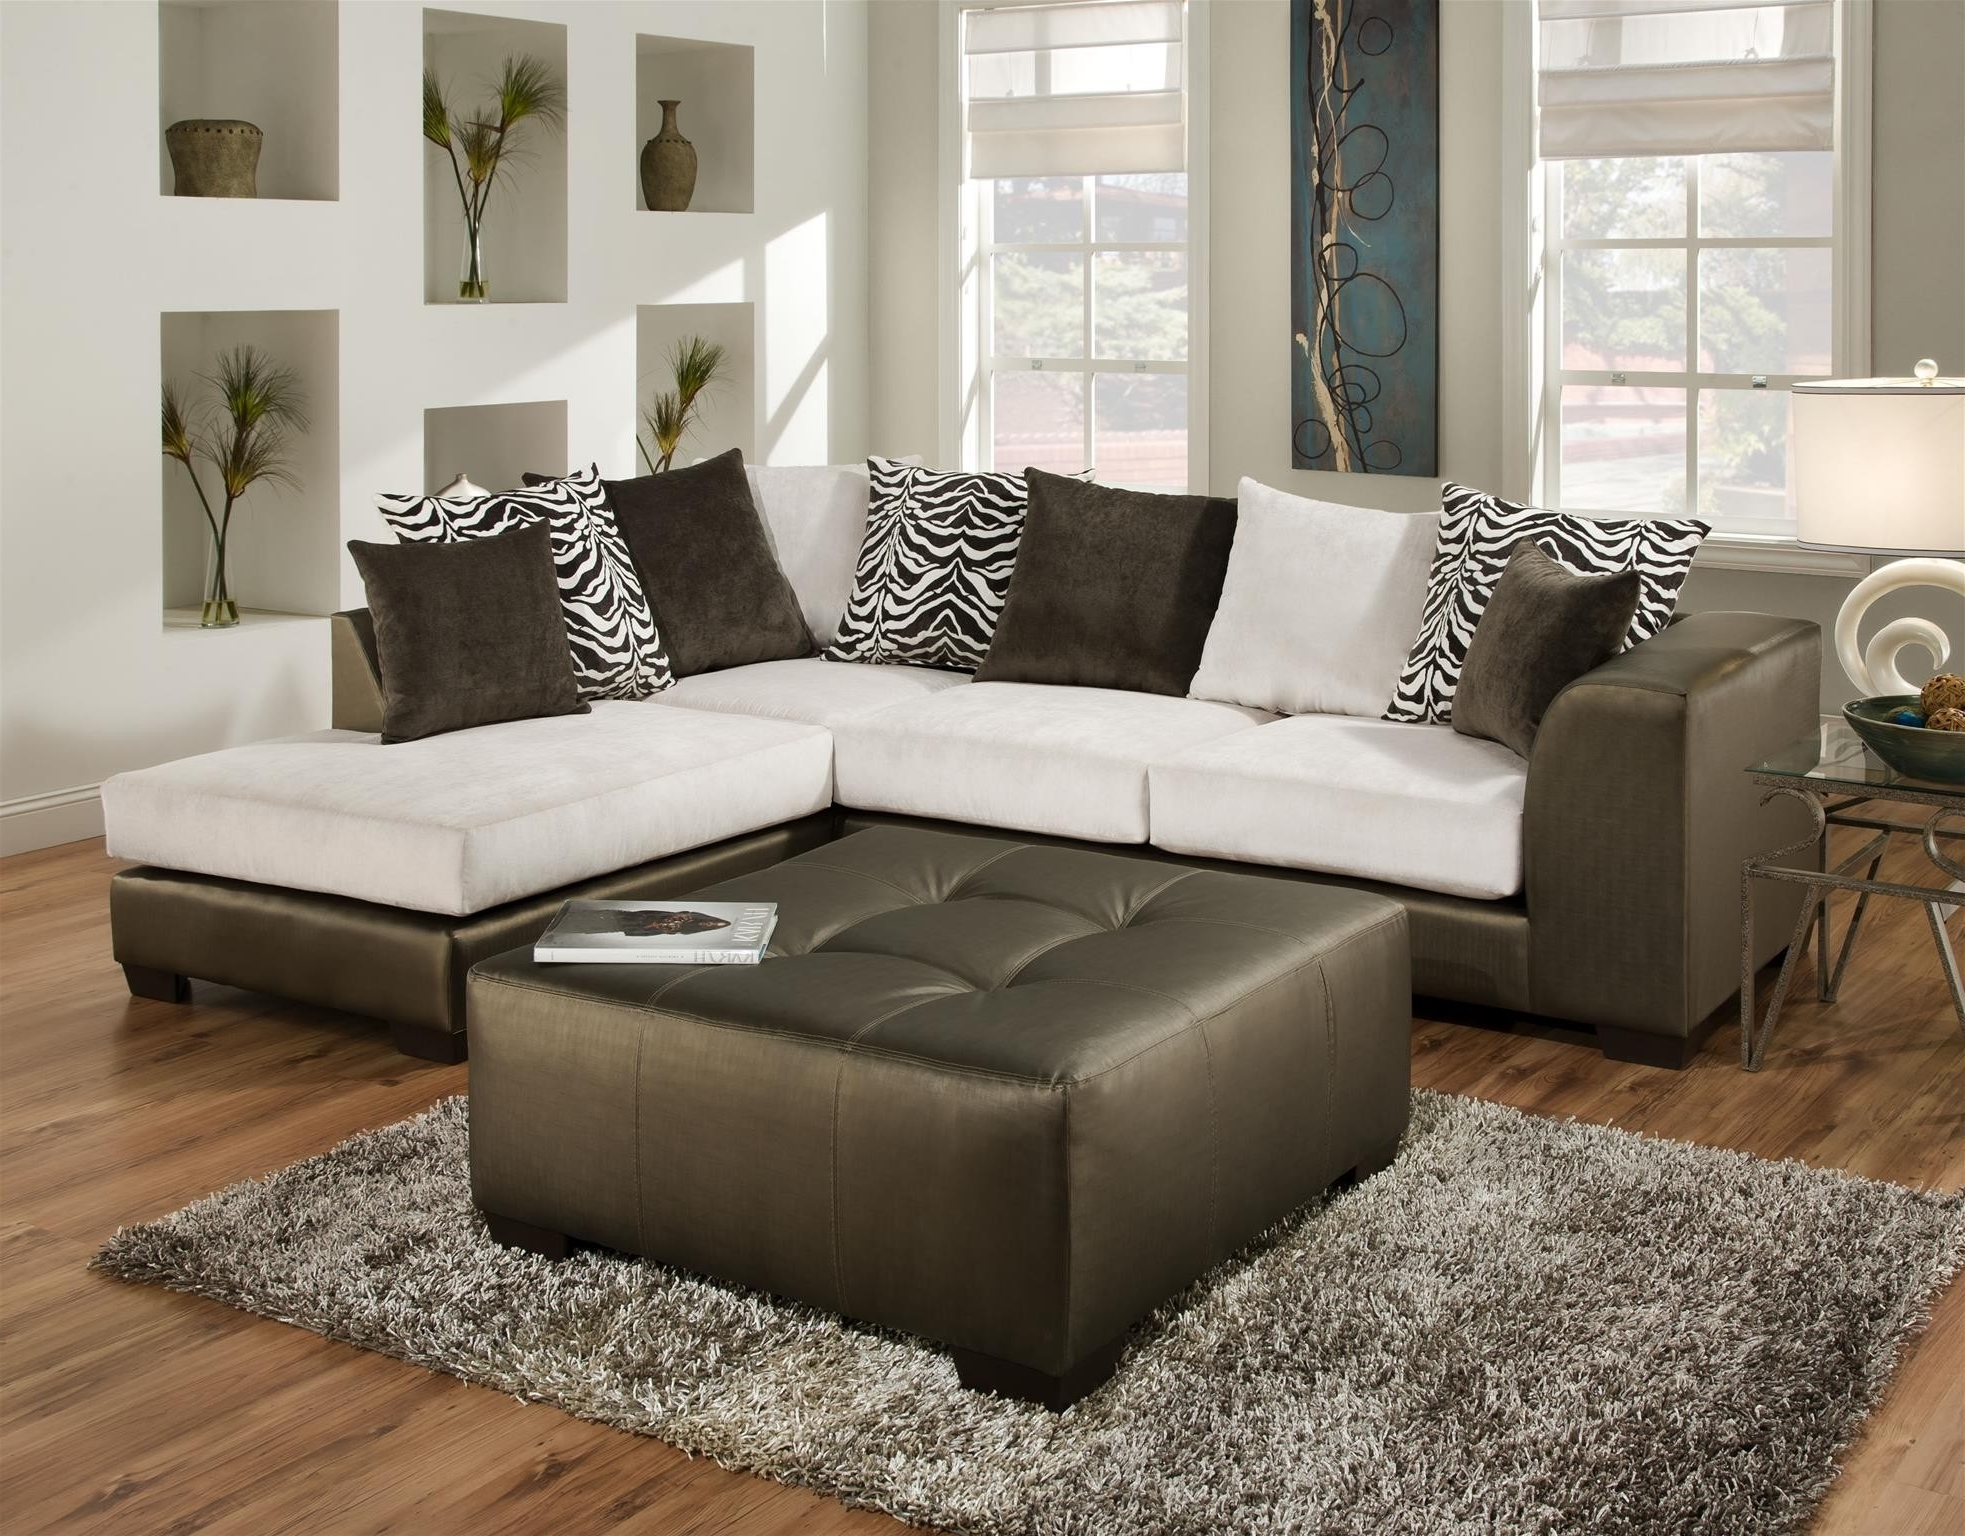 Trendy New Sectional Sofa Tampa – Buildsimplehome Within Tampa Sectional Sofas (View 5 of 15)